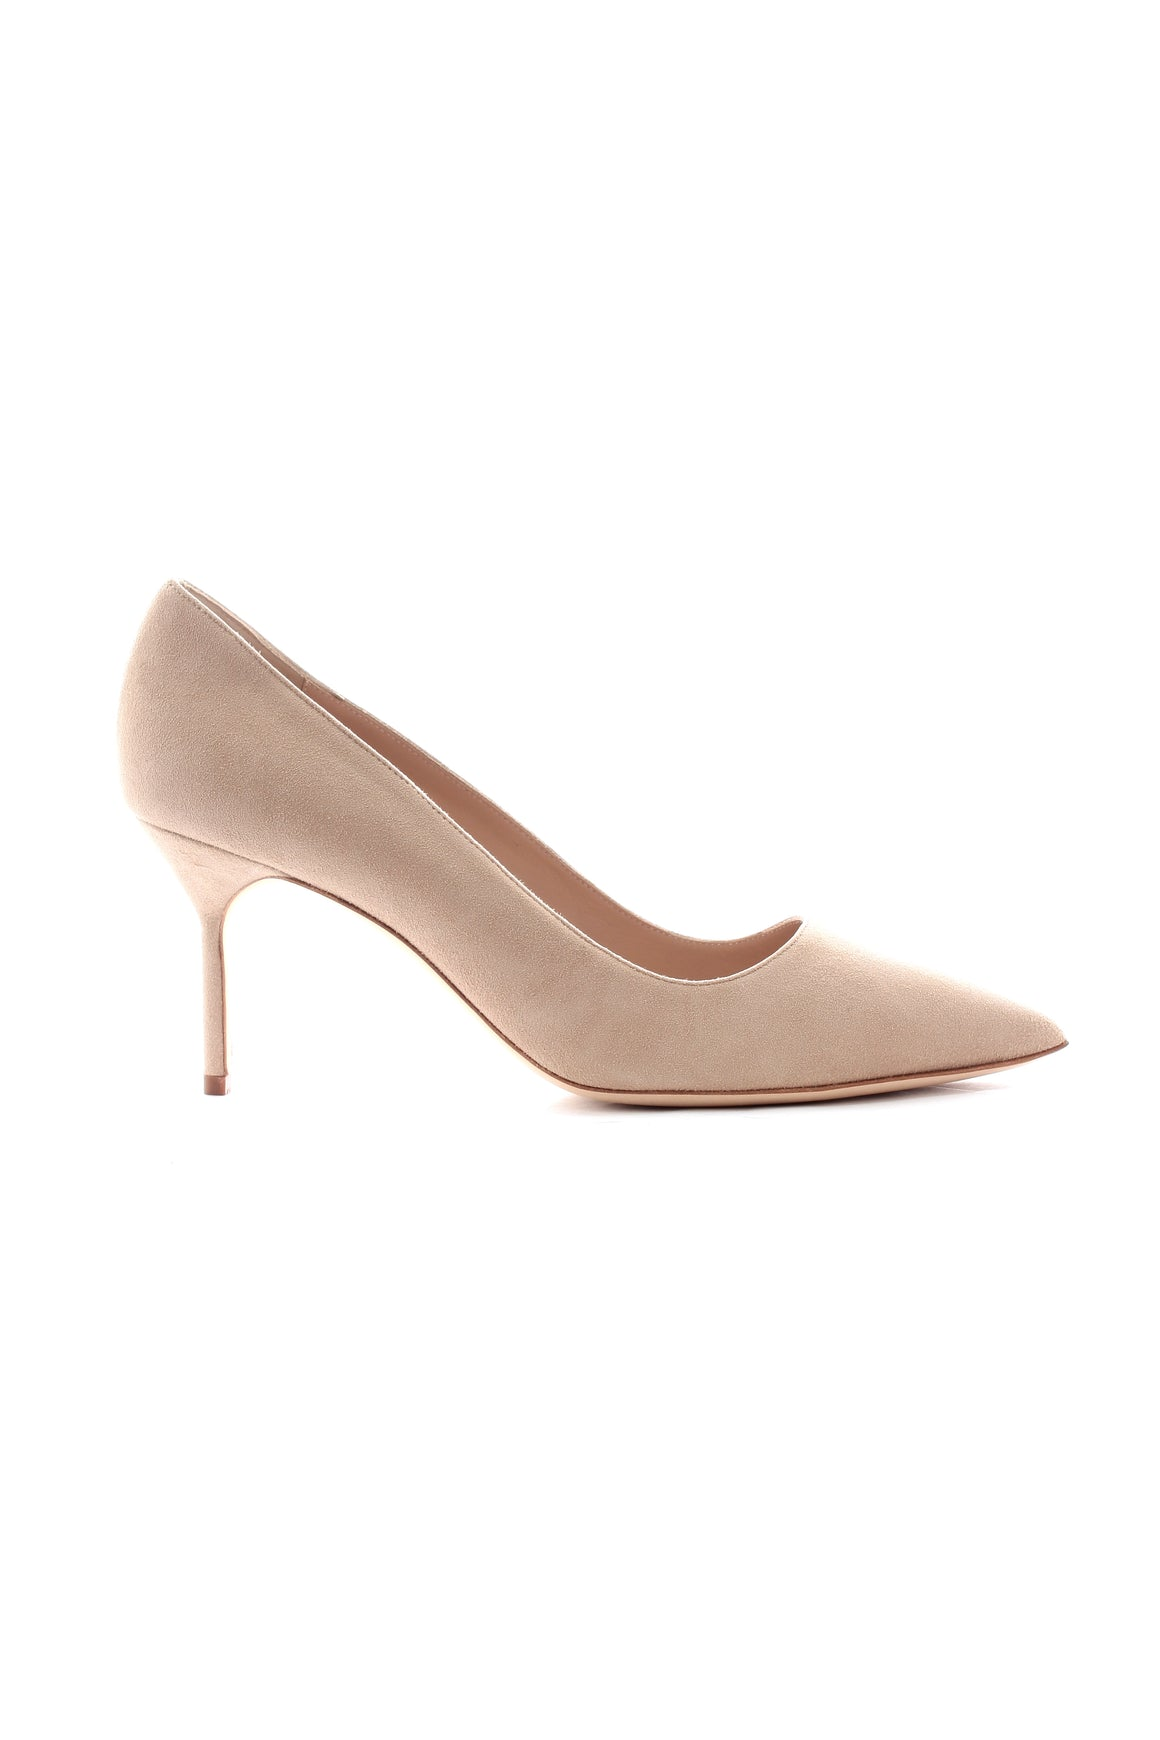 Manolo Blahnik BB 70 Suede Pointed Toe Pumps